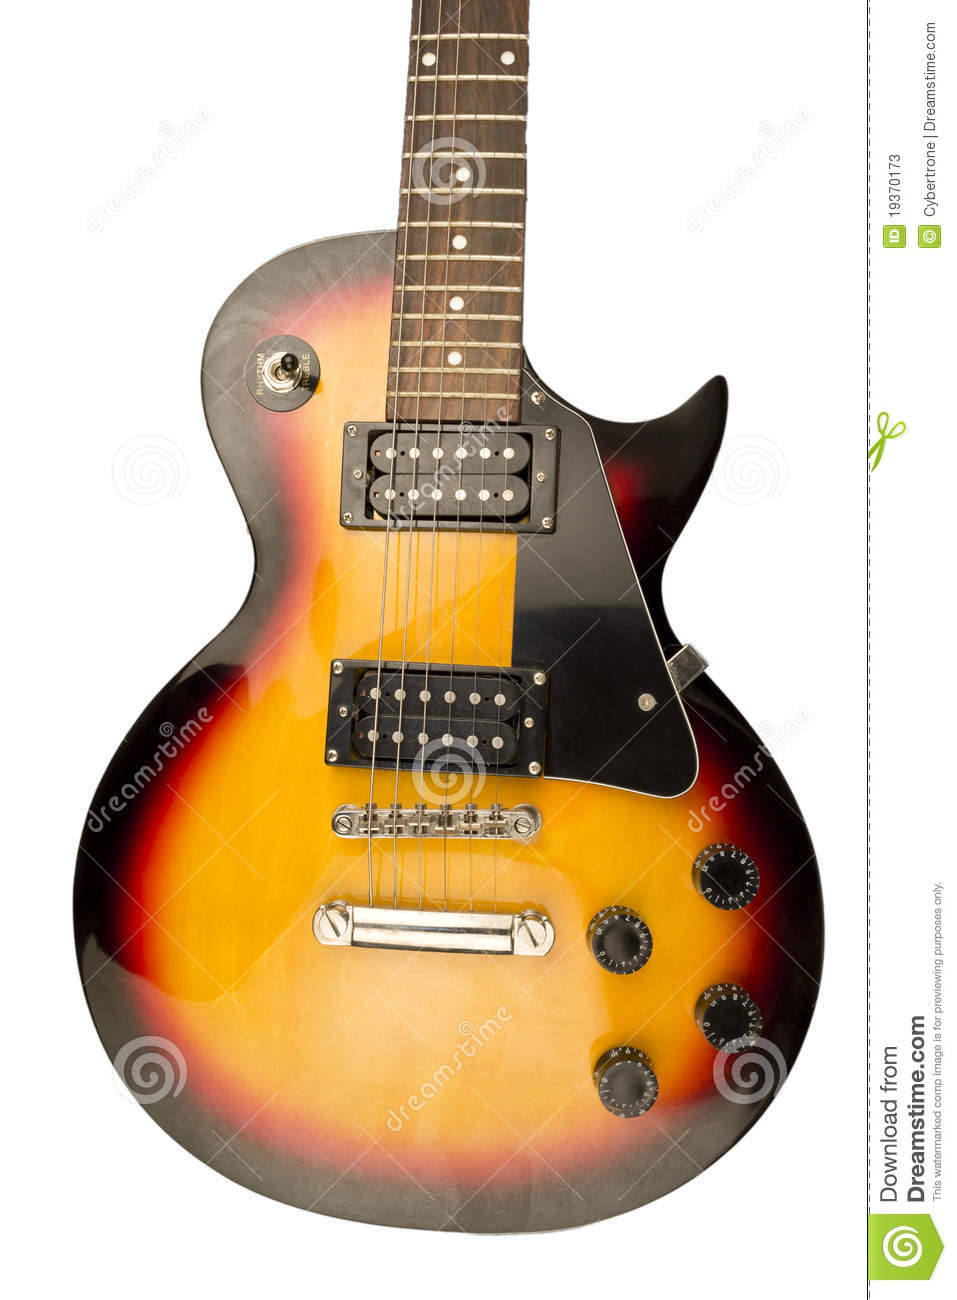 Guitarra do vintage